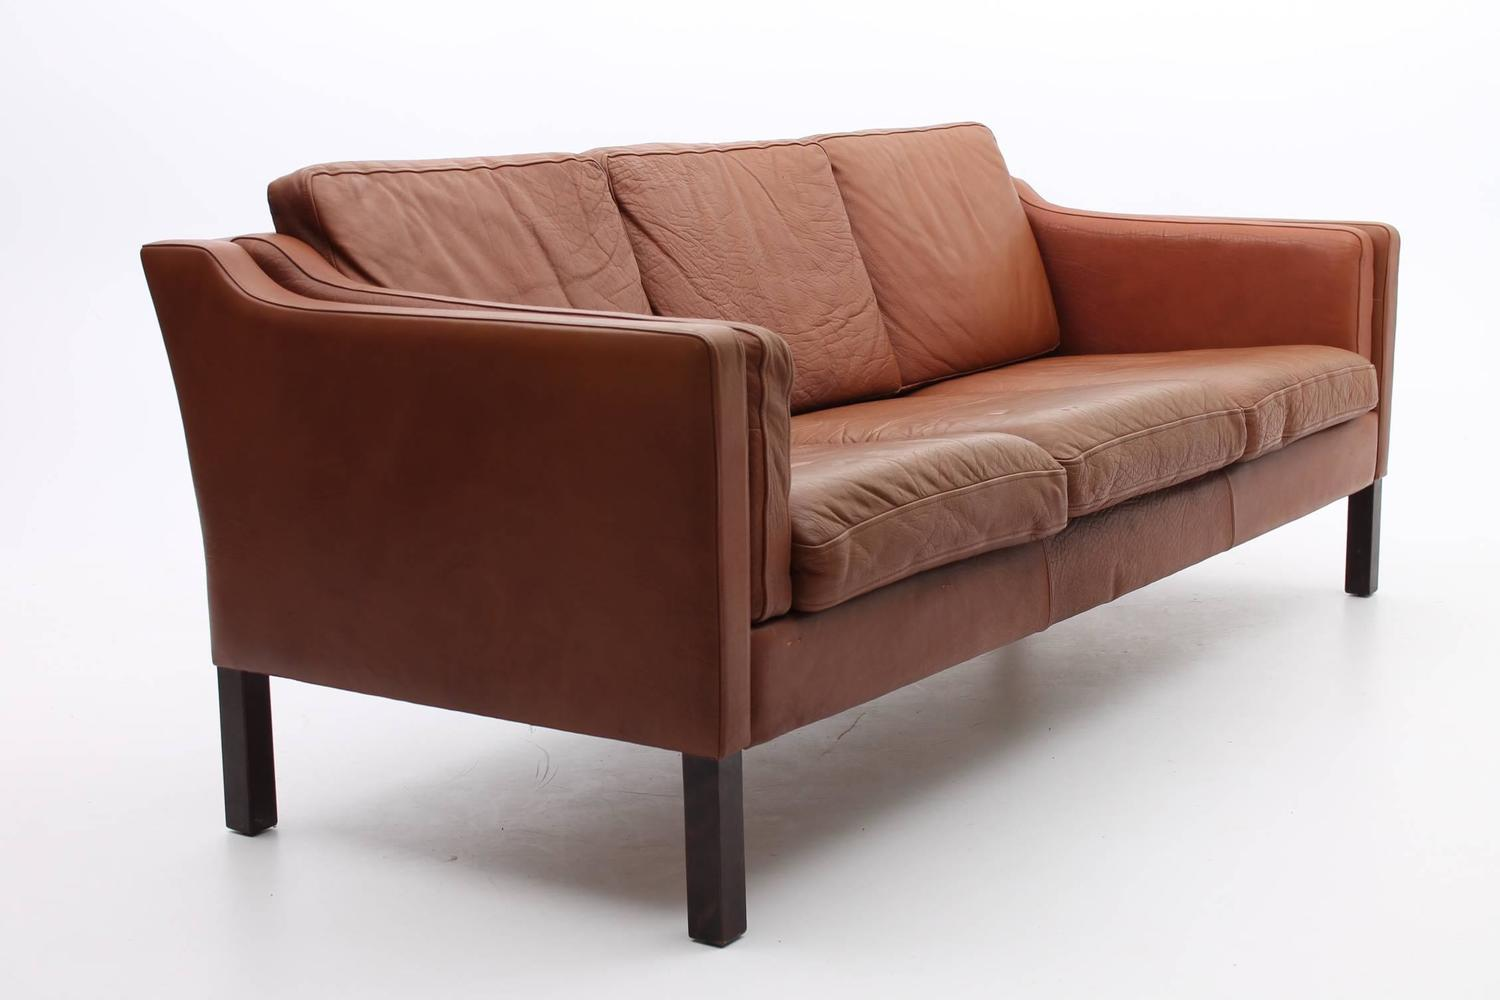 Chestnut brown leather sofa danish mid century modern for Mid century modern leather sofa